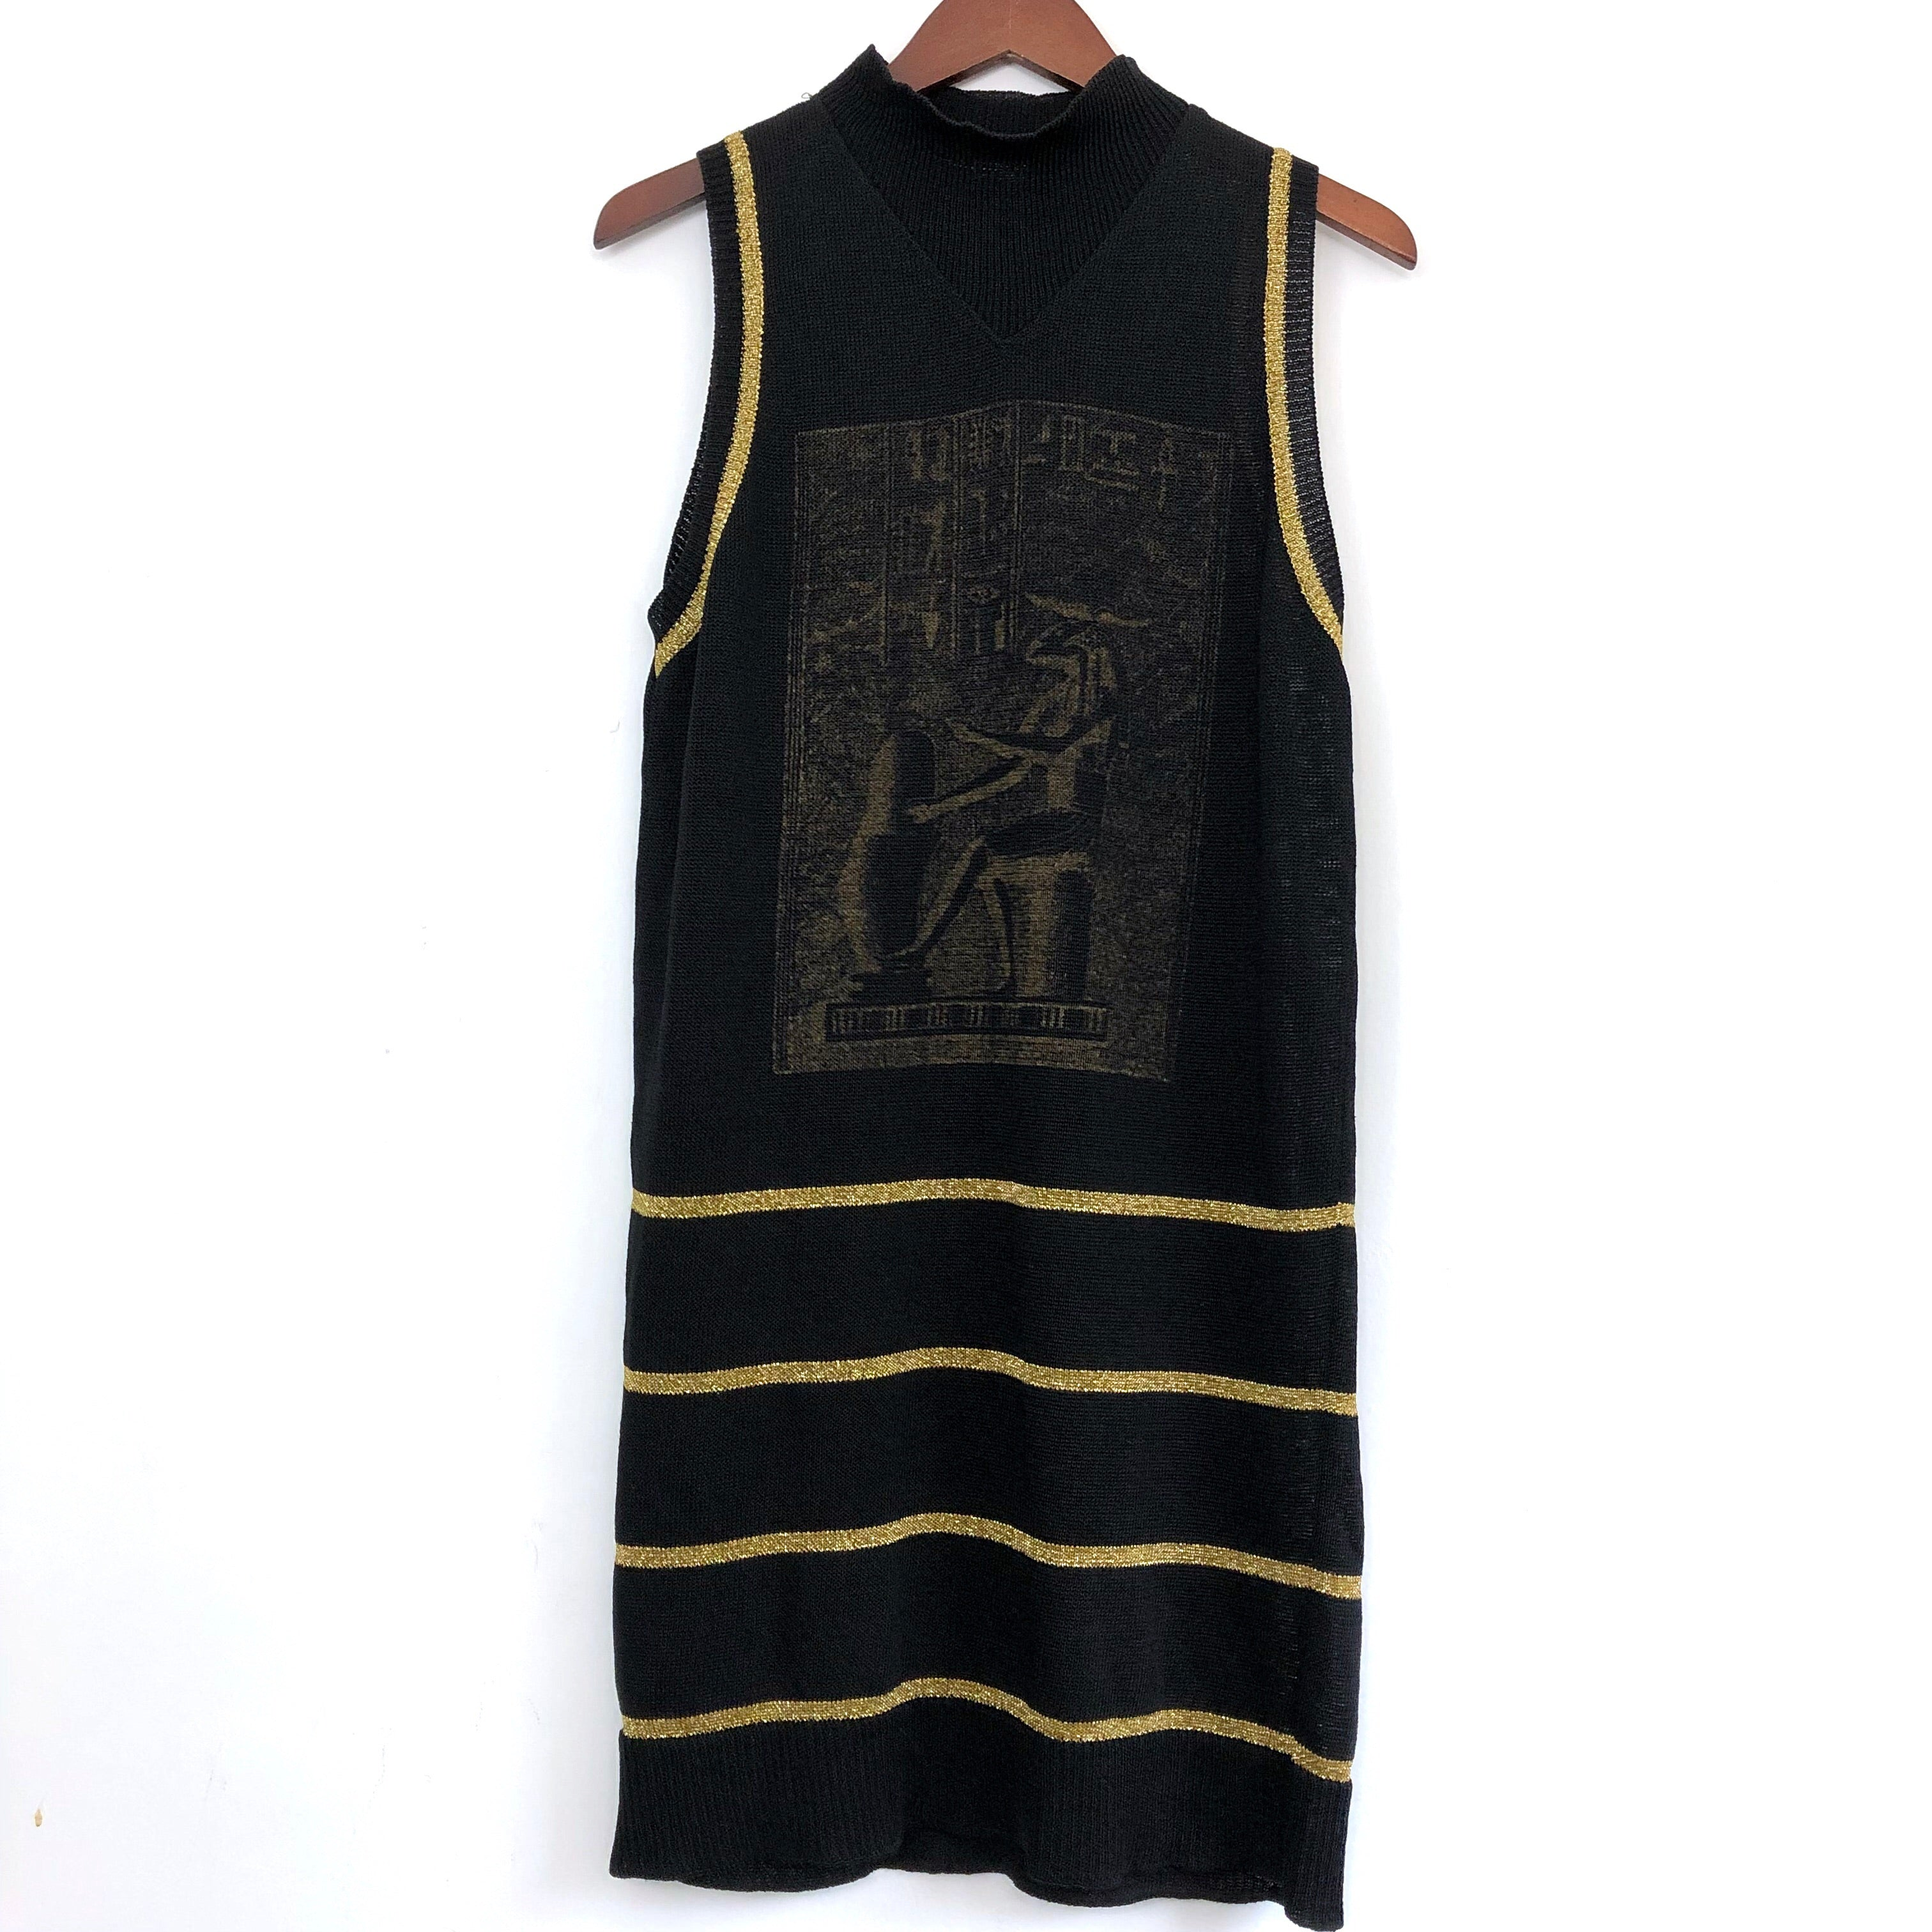 RetroDrip Collection / Byblos Vest Sweater Knit with gold stripes